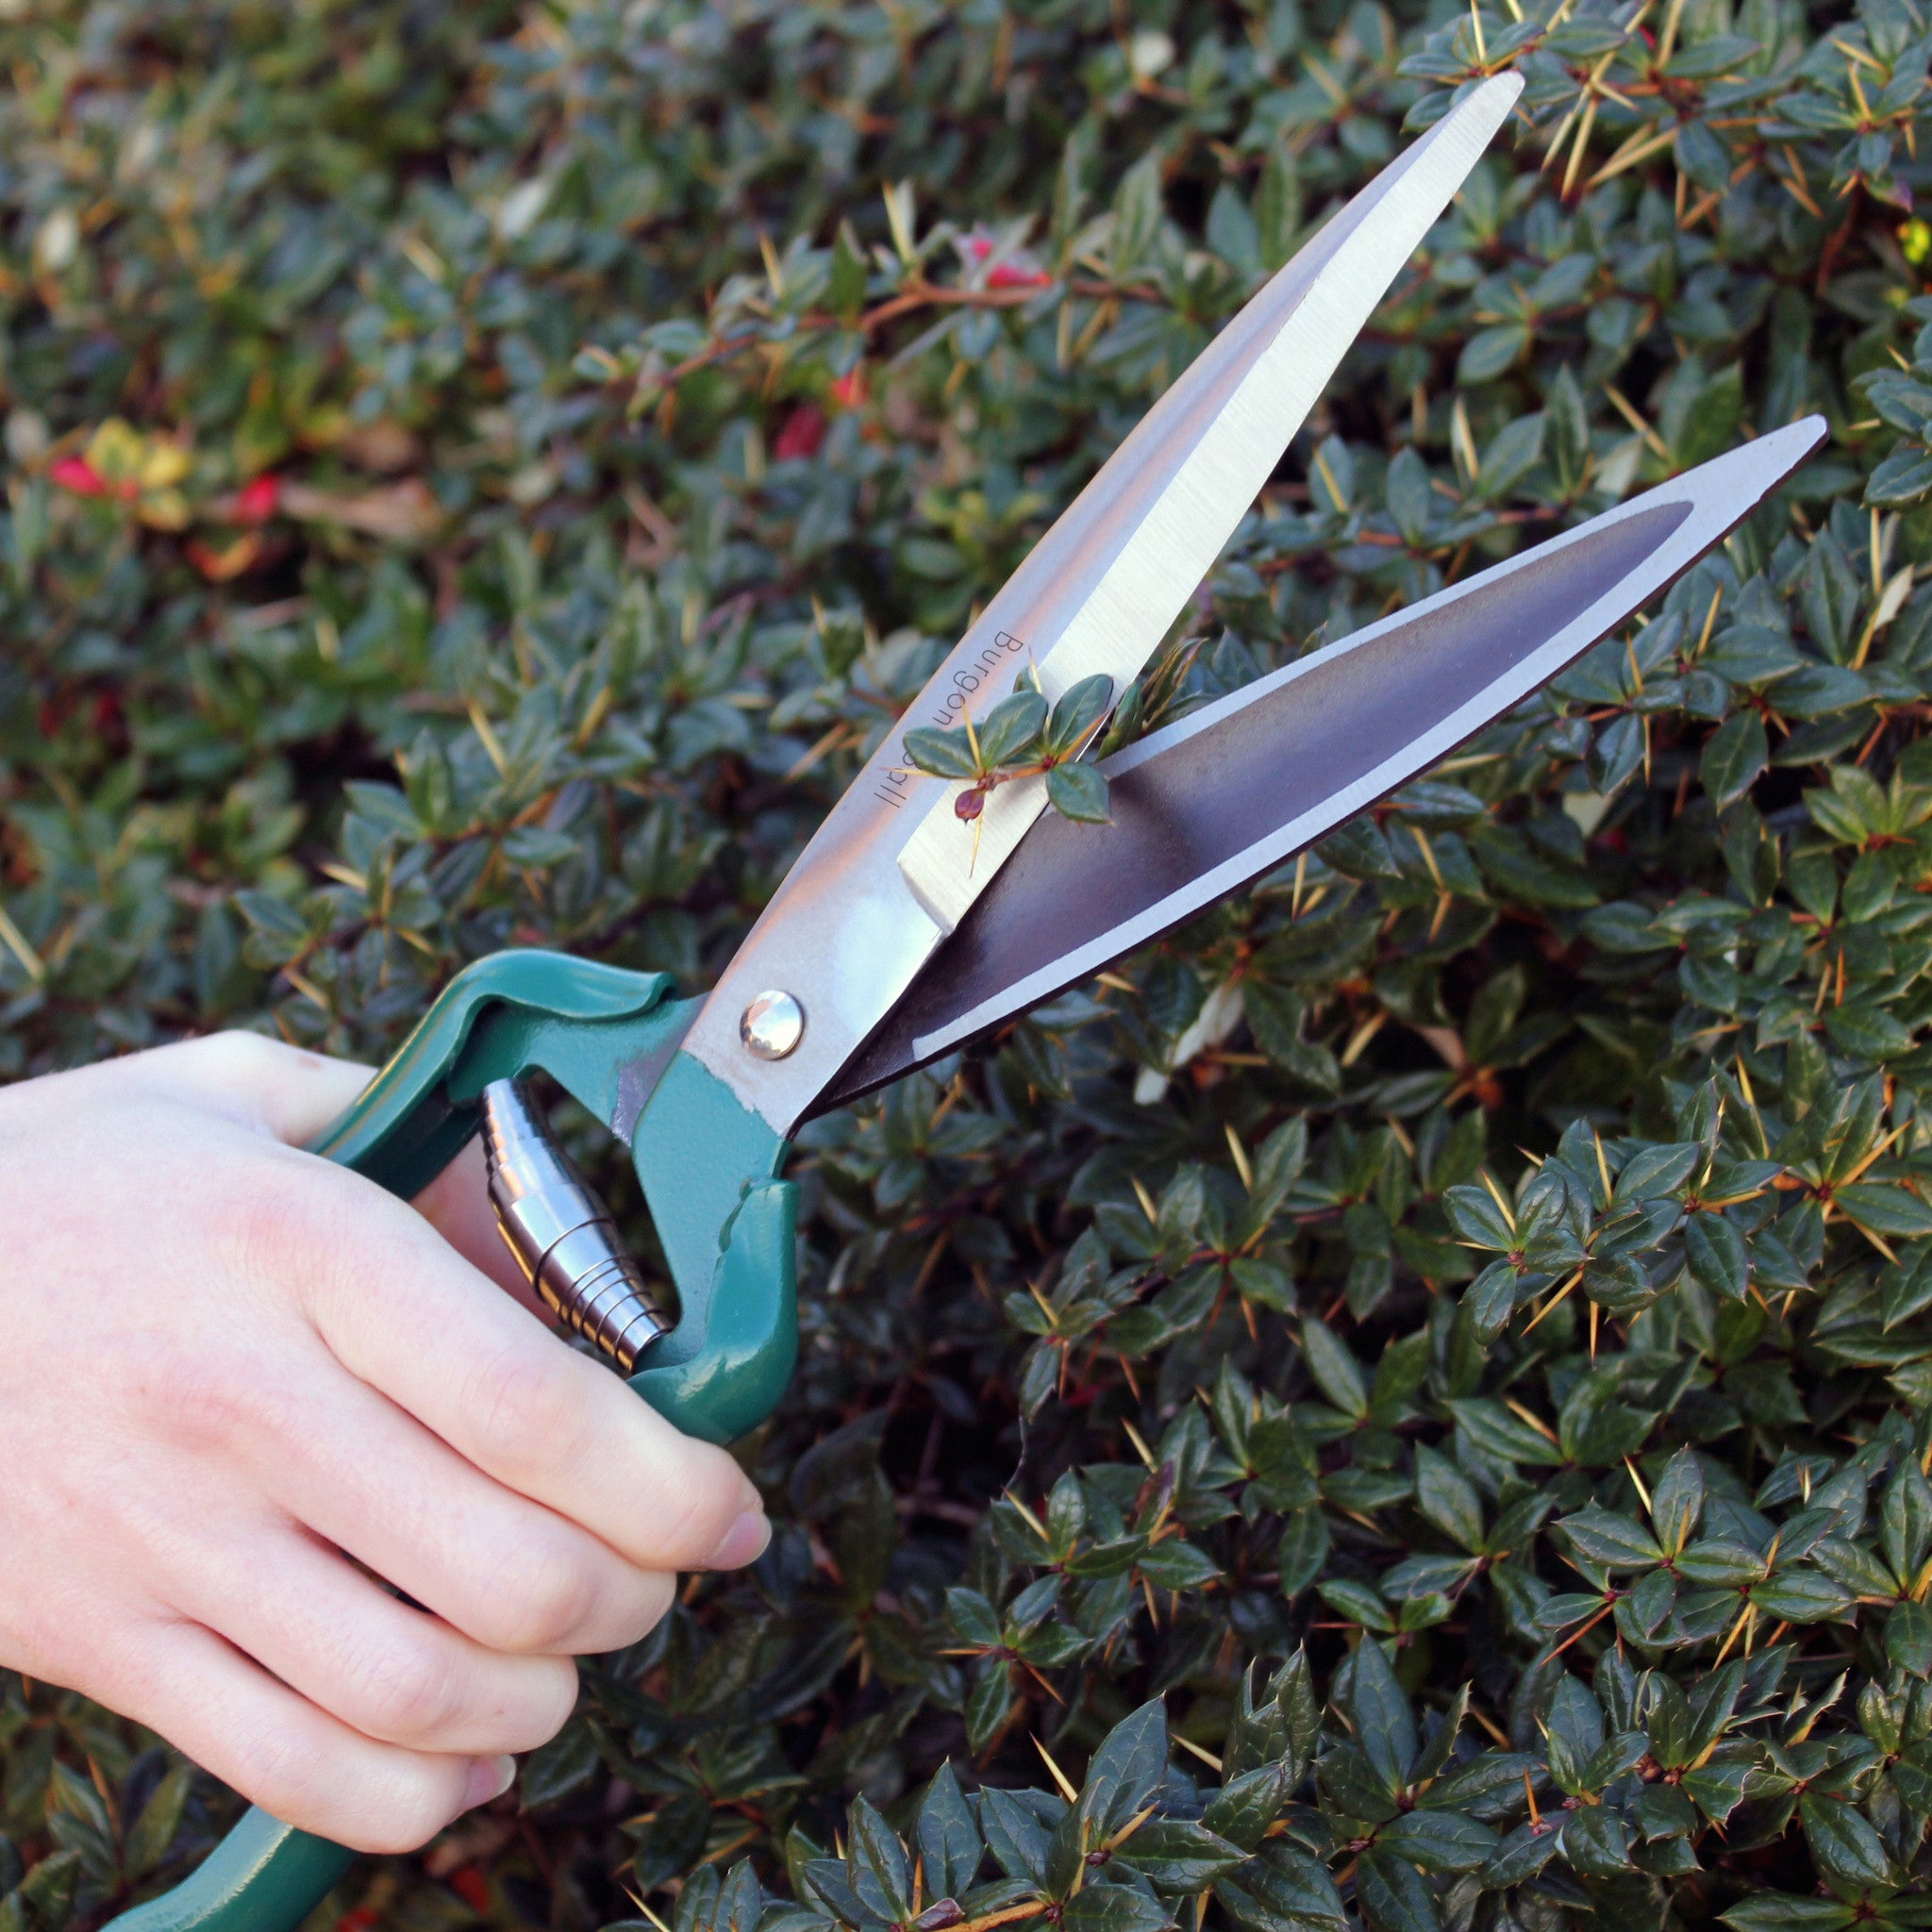 Shrub Shear - RHS Endorsed - The Potting Shed Garden Tools